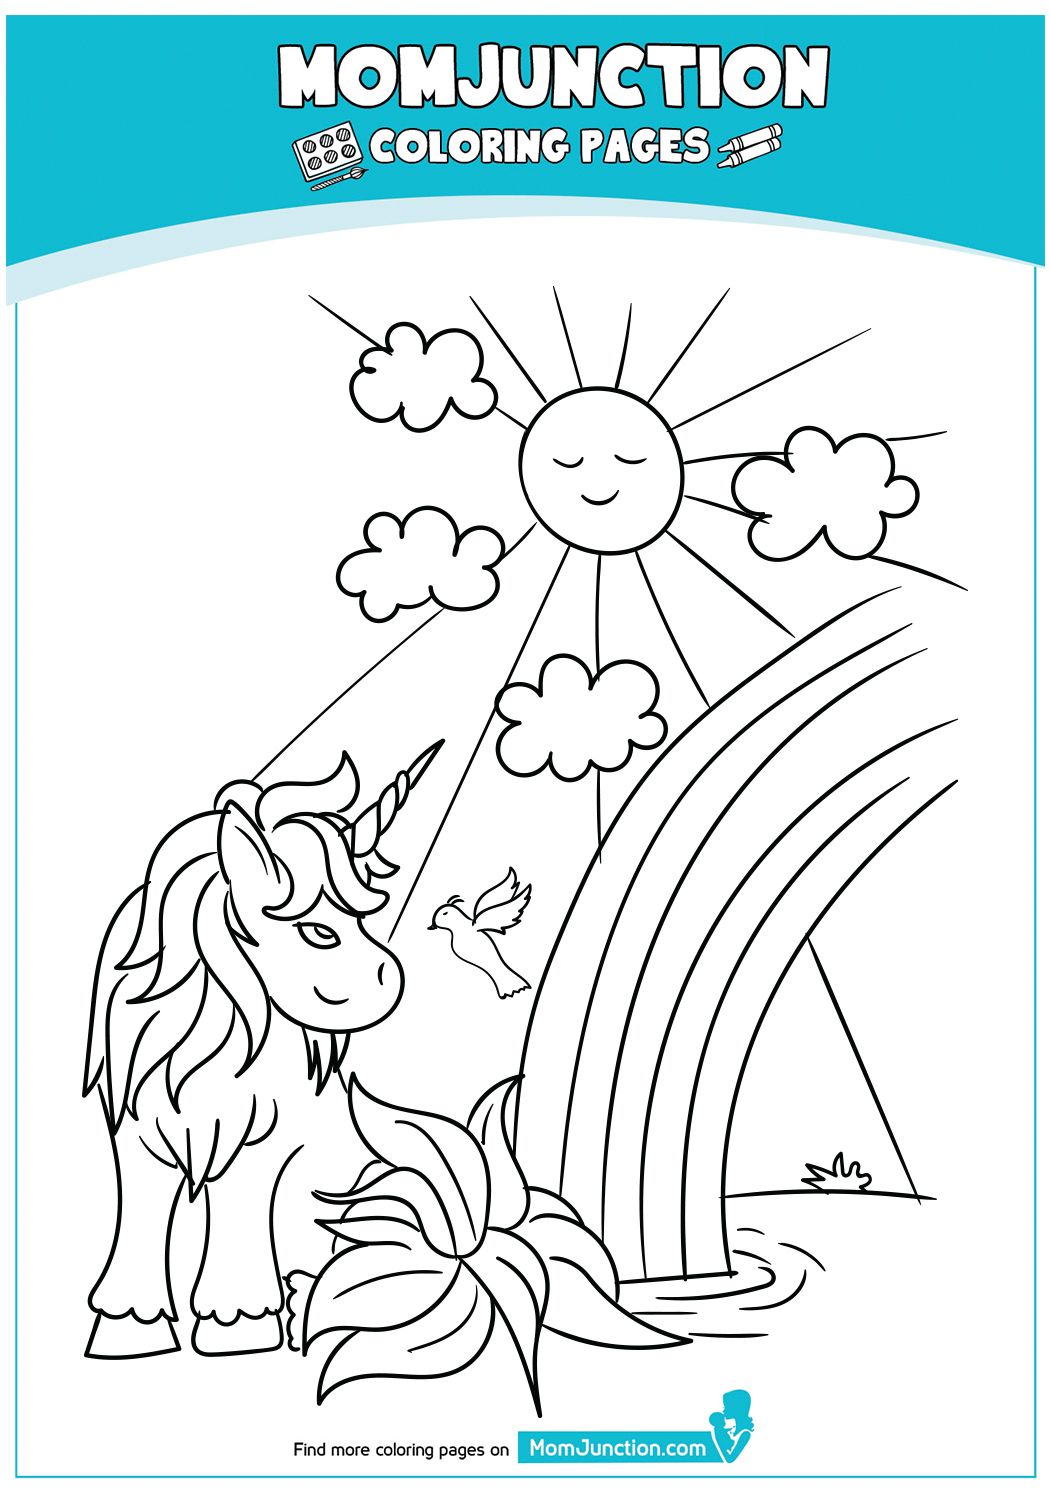 Unicorn-Watching-Rainbow-on-Pond | Coloring pages, Mom ...